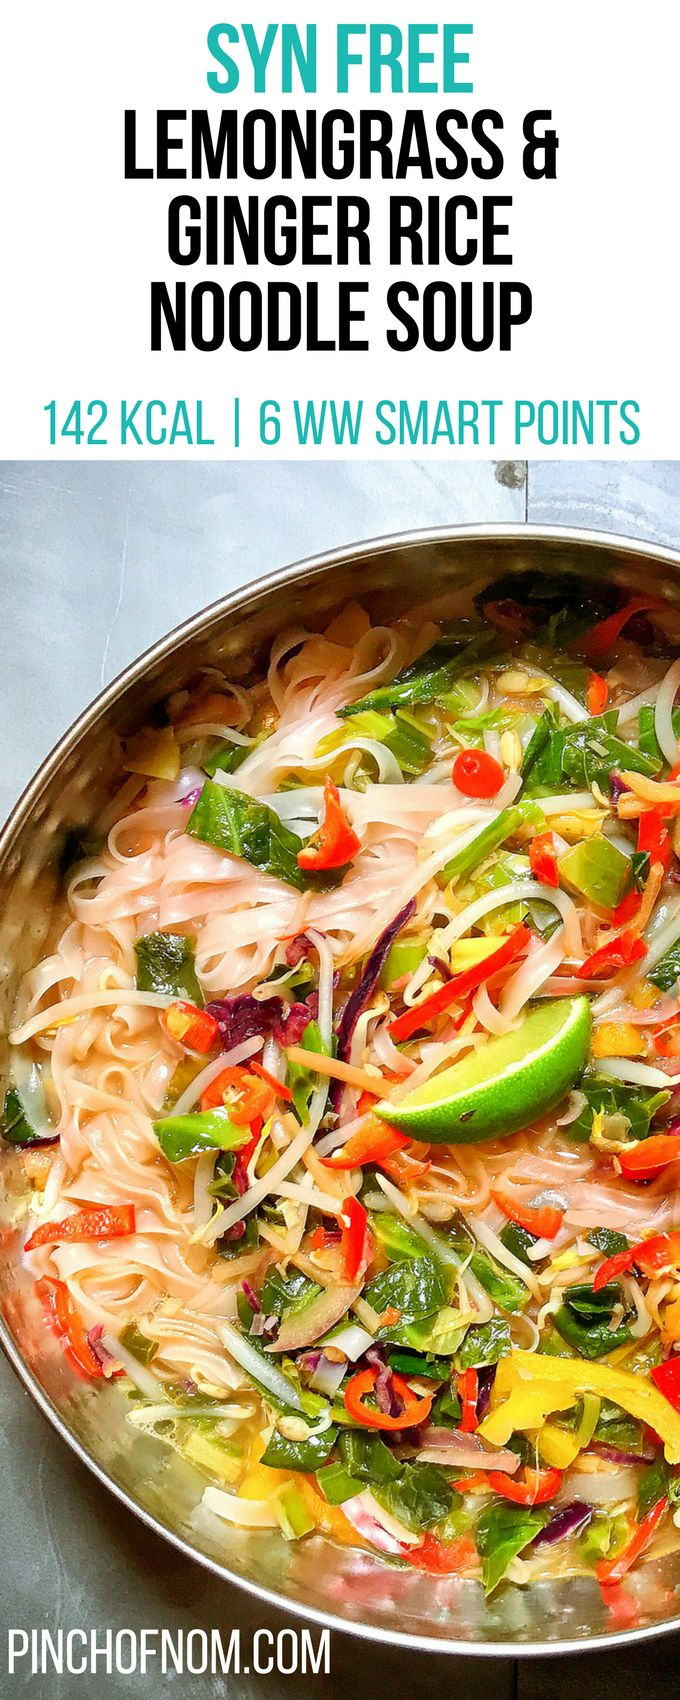 Syn Free Lemongrass & Ginger Rice Noodle Soup | Pinch Of Nom Slimming World Reci…